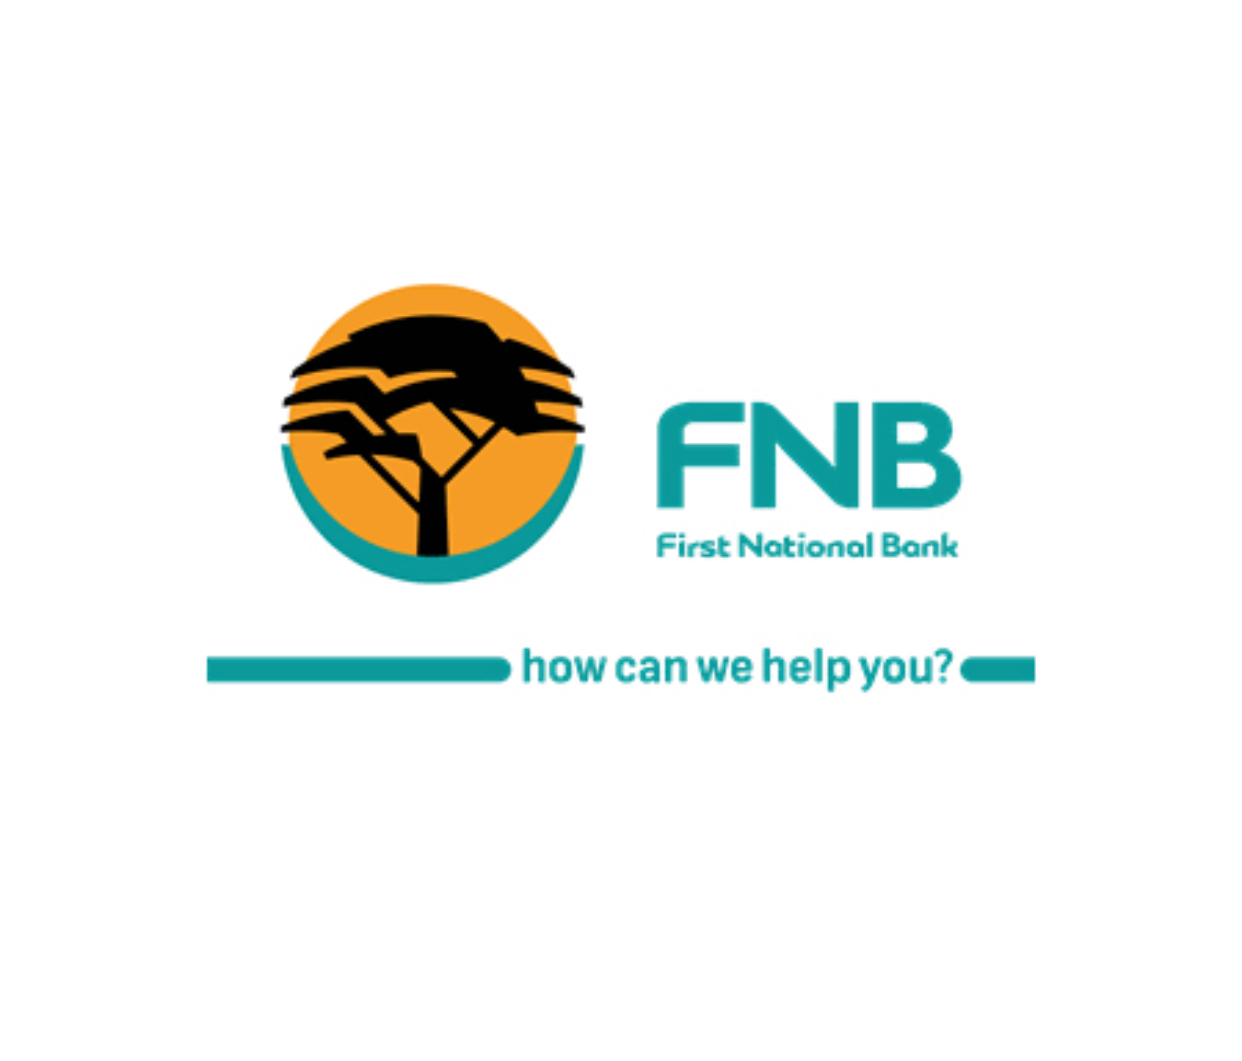 FNB's E1miliion donation for government to fight Coronavirus